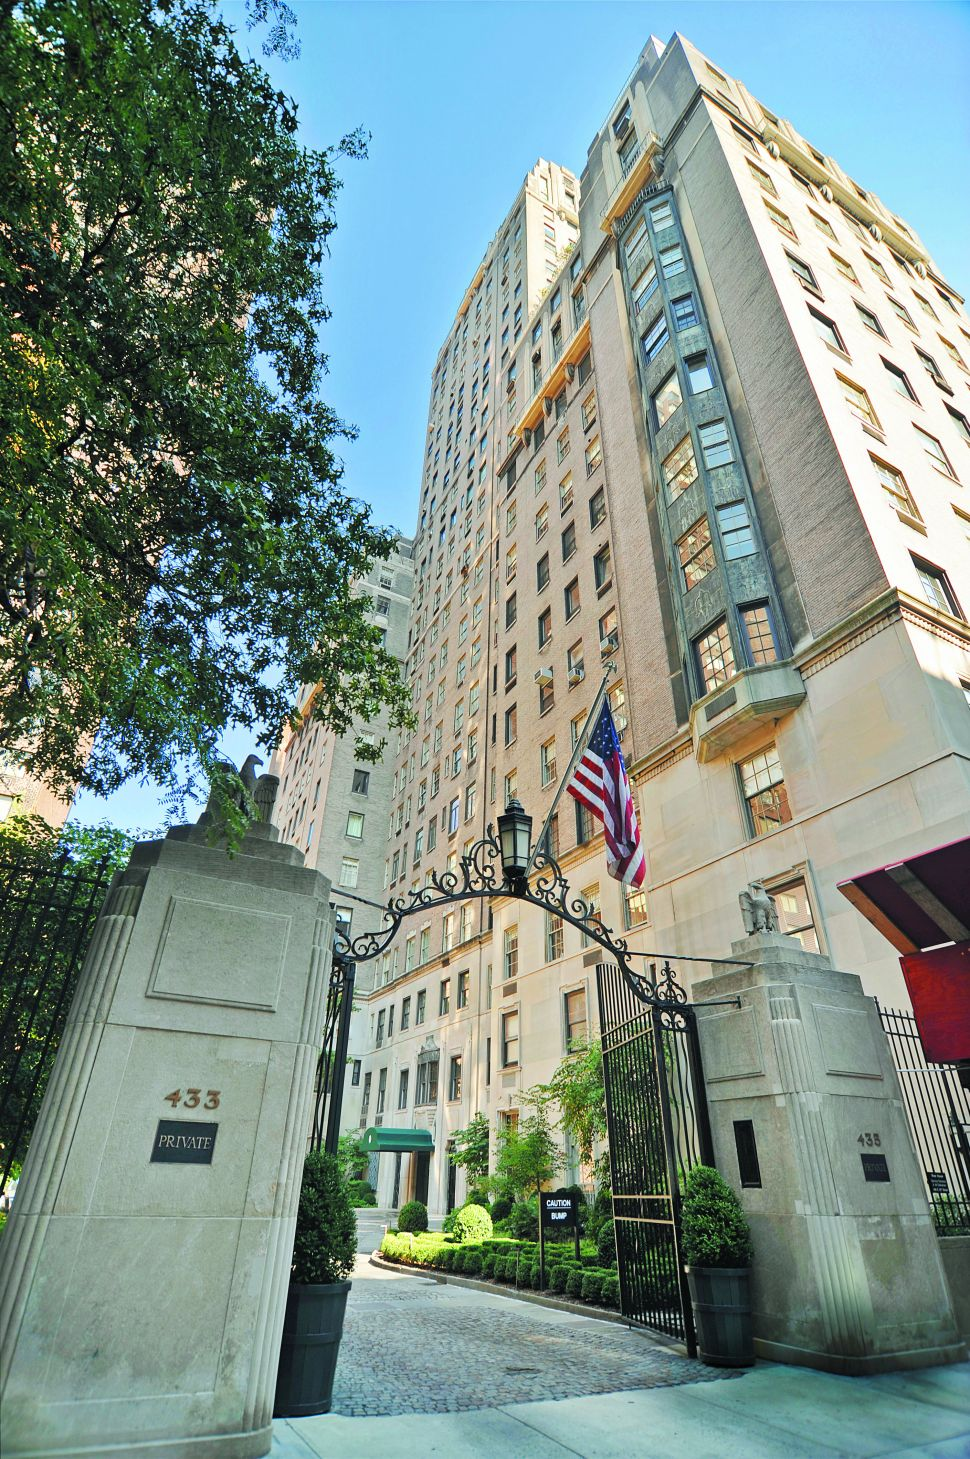 Snooty River House Co-op Board Has Granted Entry to a Buyer Deemed Worthy